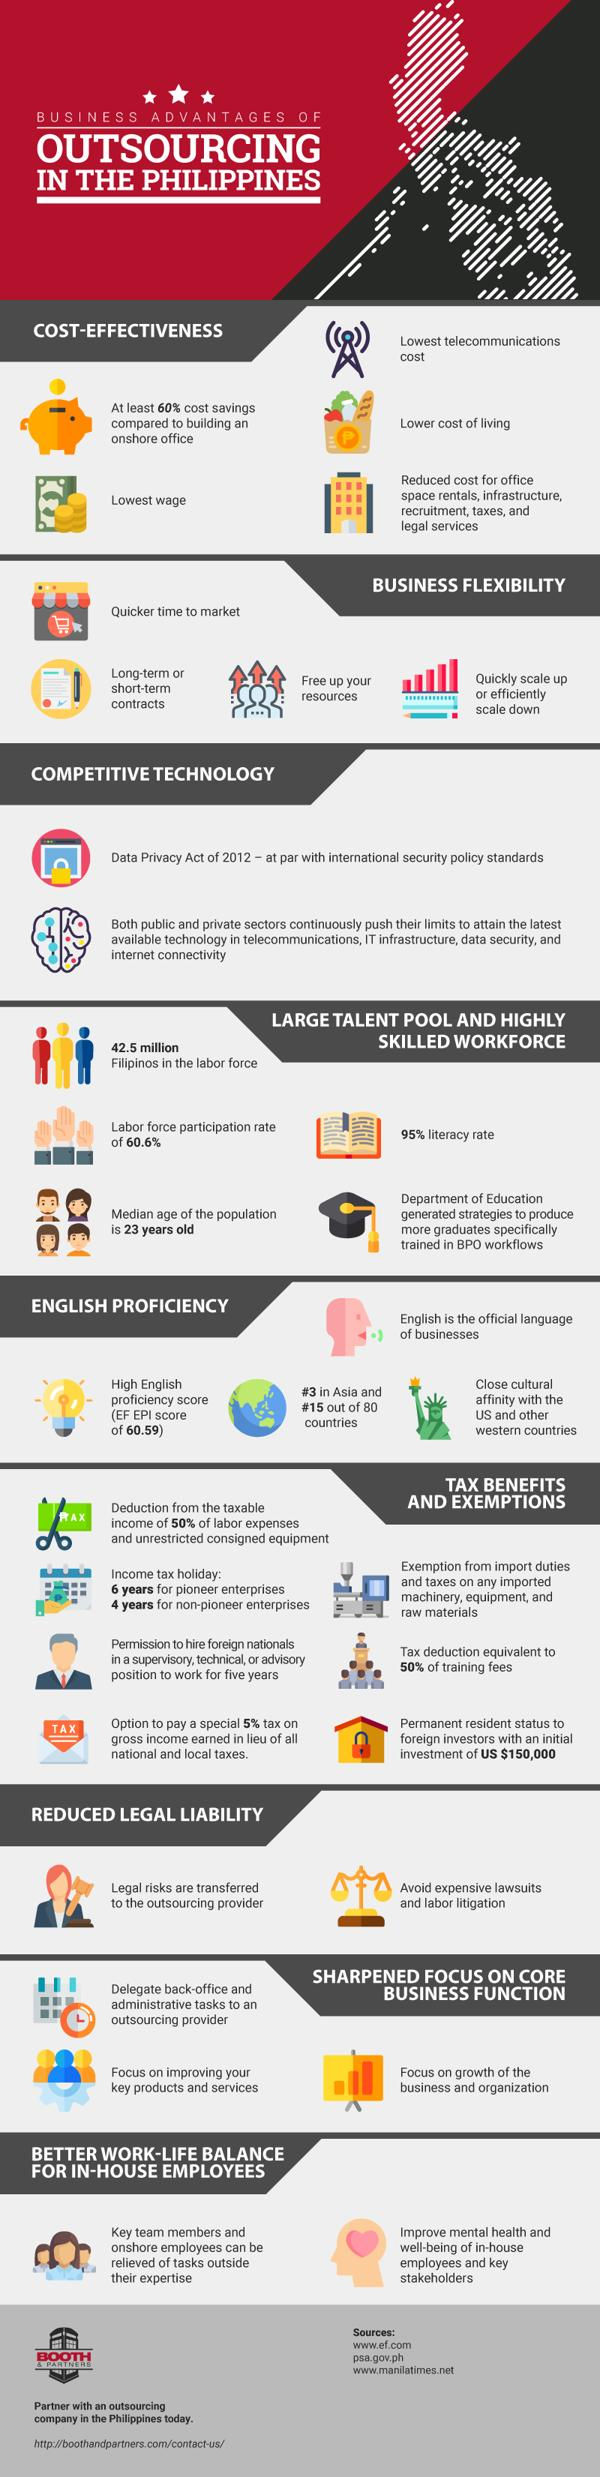 Business Advantages of Outsourcing in the Philippines 1